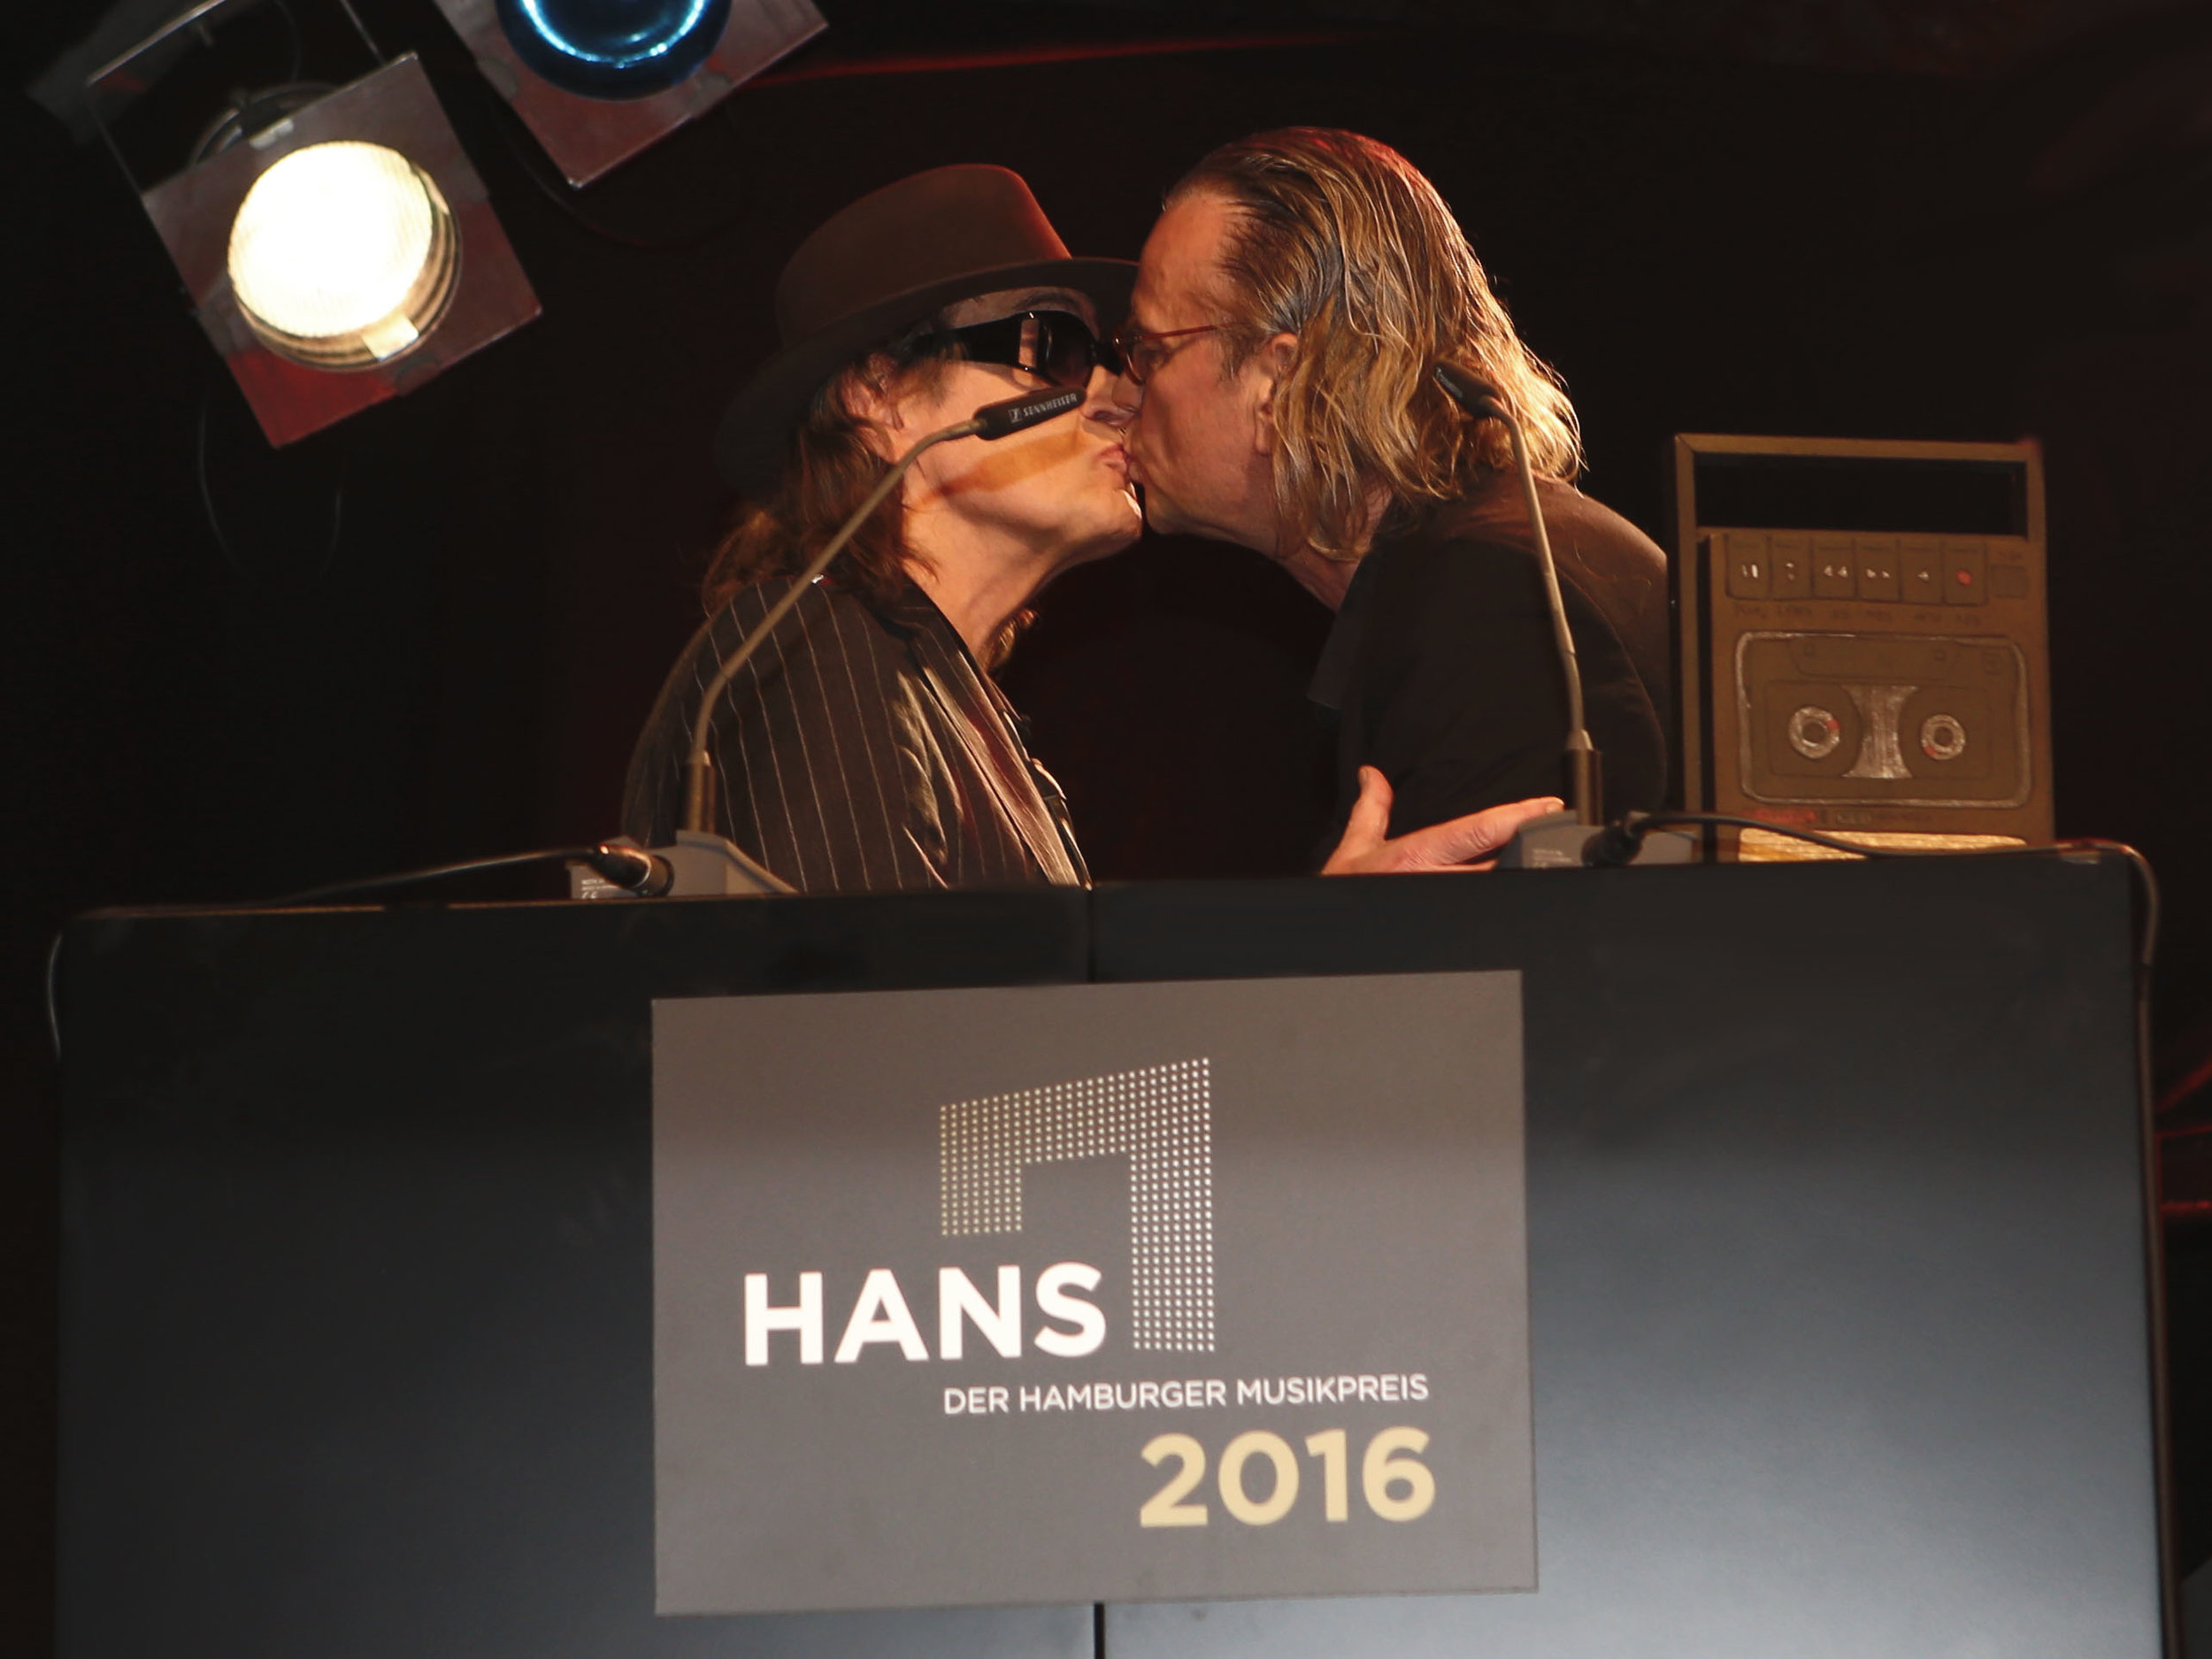 HANS - Der Hamburger Musikpreis 2016 (© public address)